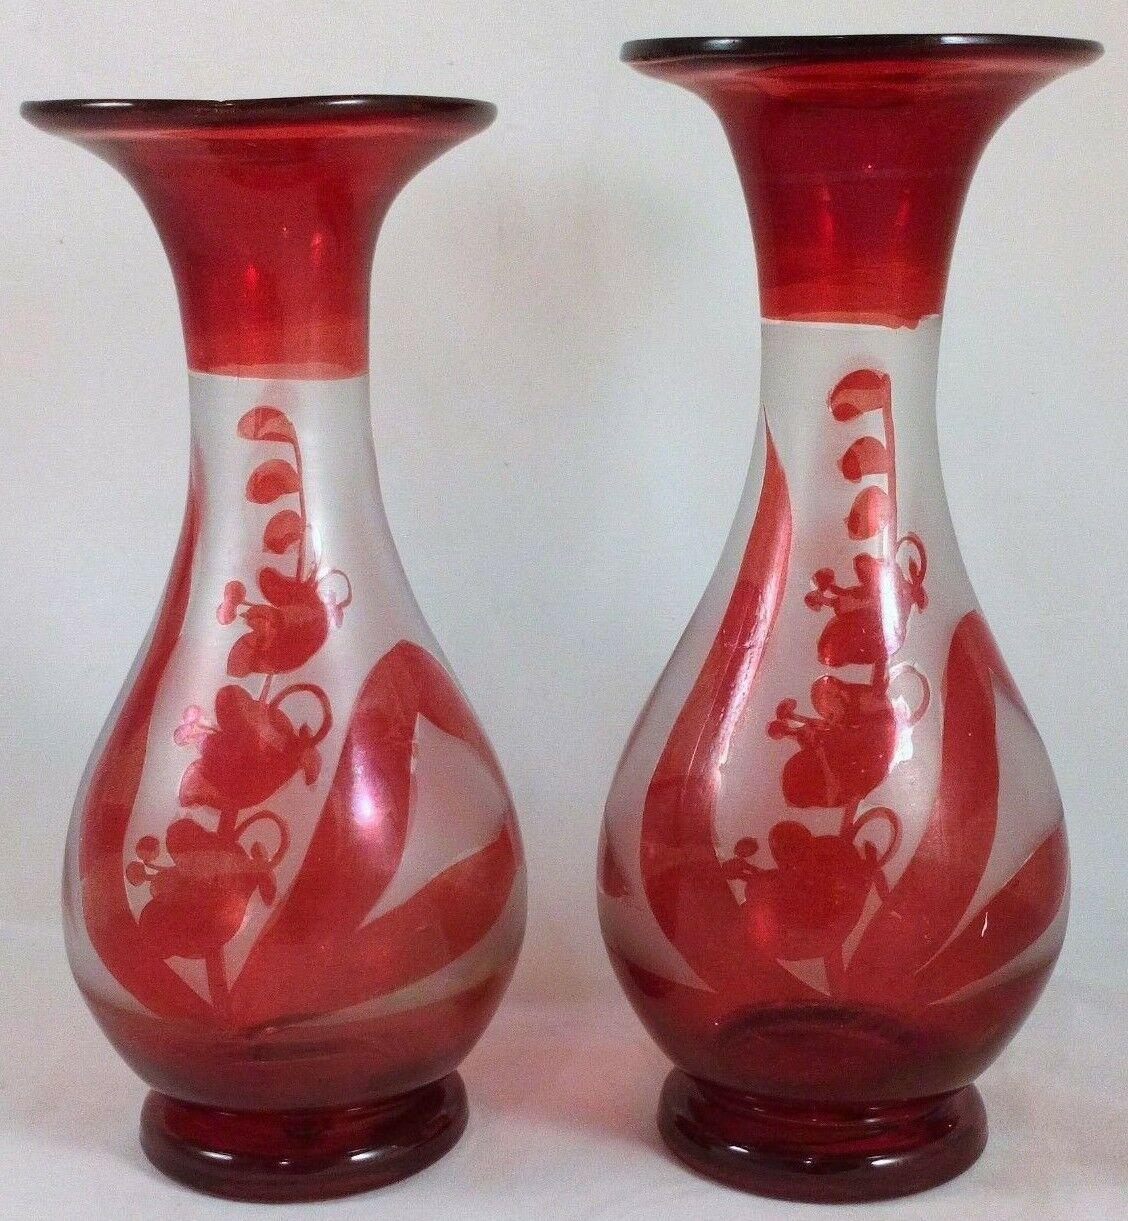 Bohemian Ruby Flashed Glass Pair Vases Lily of The Valley Design Antique c 1880